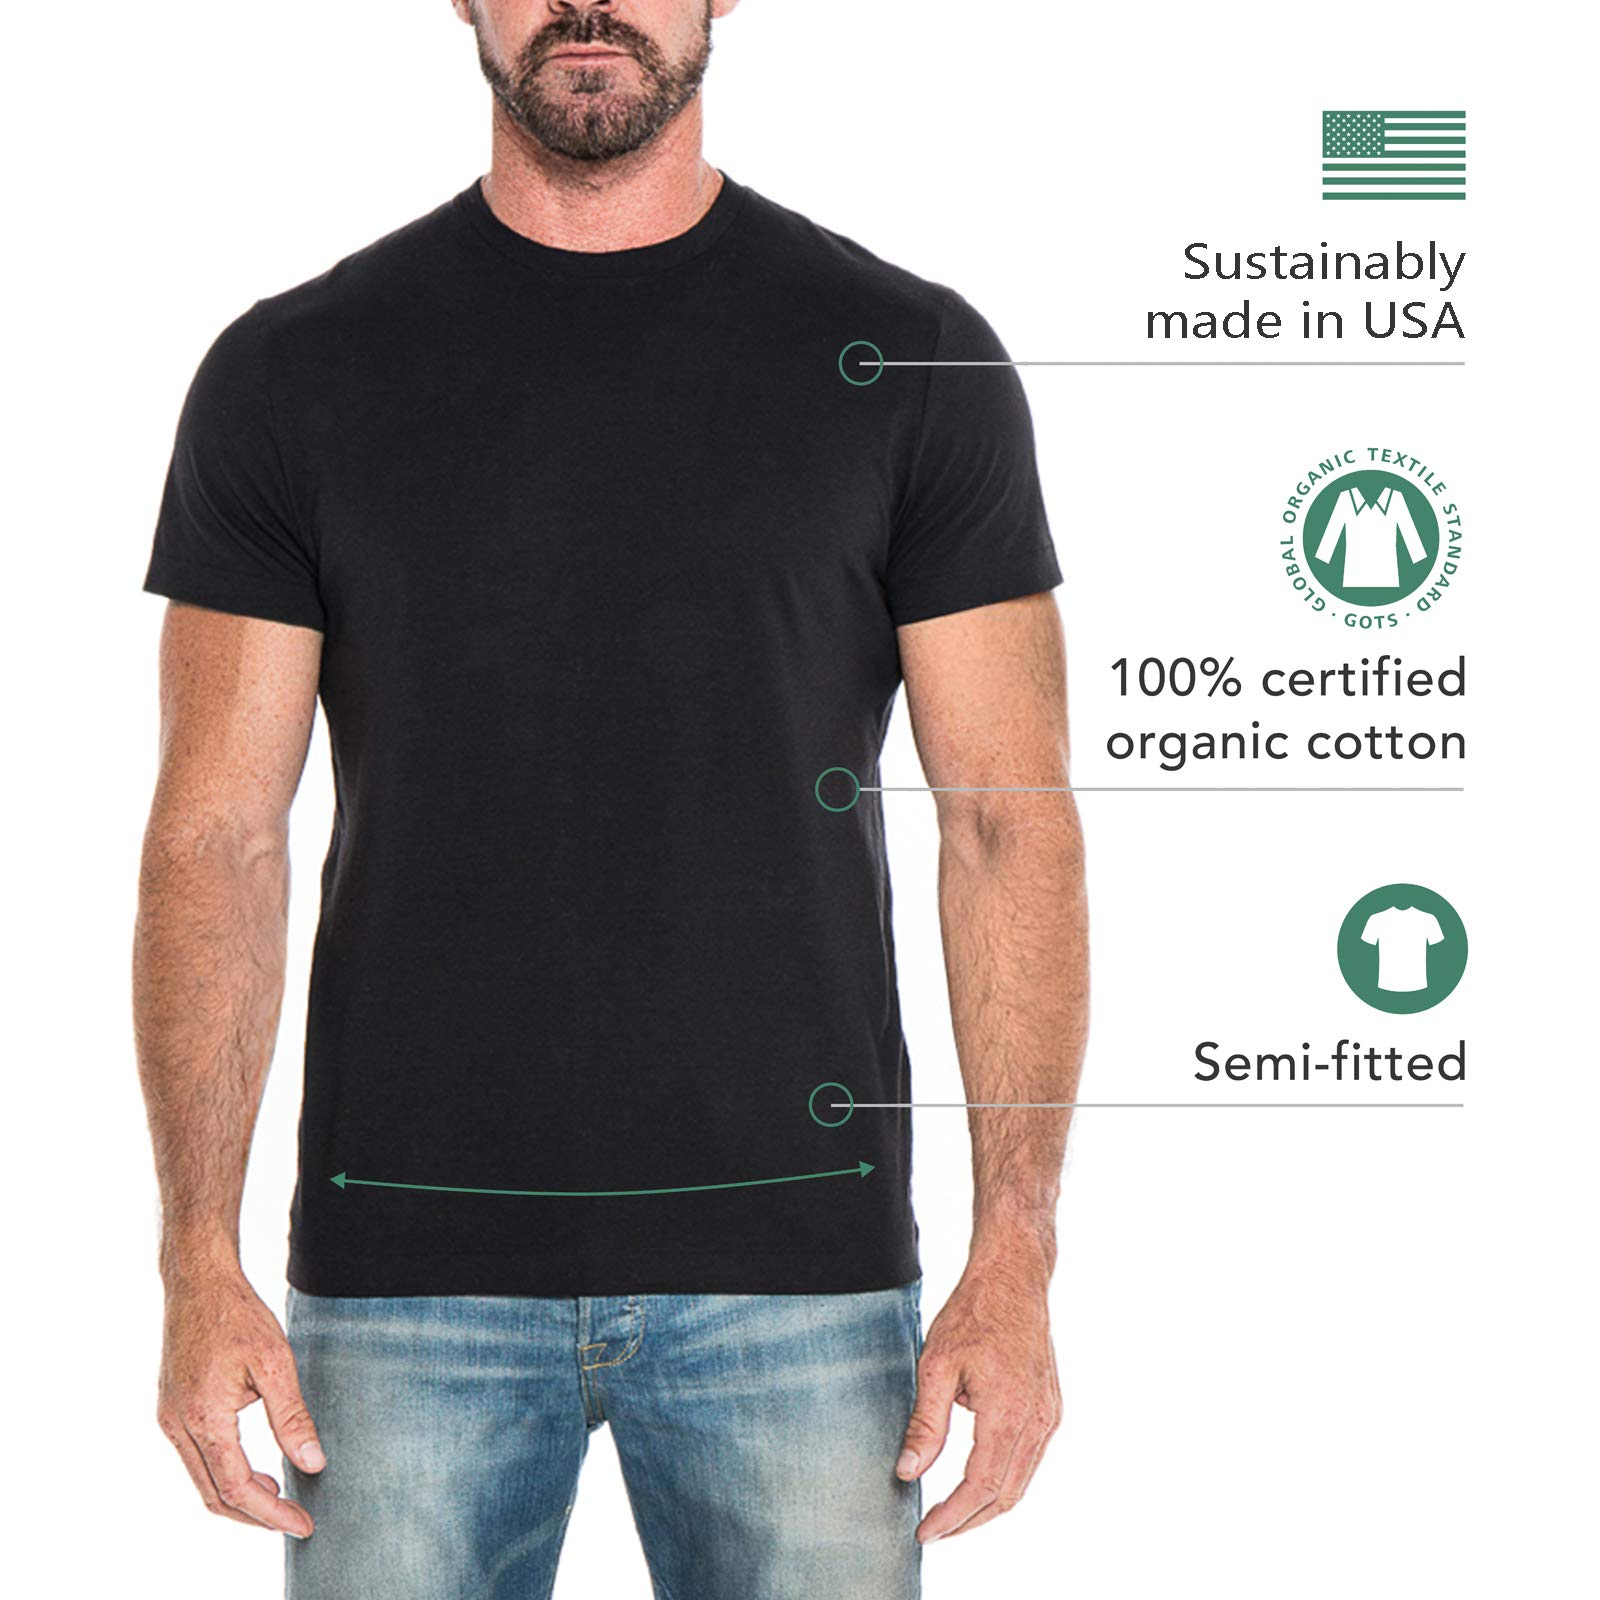 d3dfccf14c02f THE CLASSIC T-SHIRT COMPANY Men s Lightweight 100% Organic Cotton  Semi-Fitted Crewneck Tshirt – Made in USA